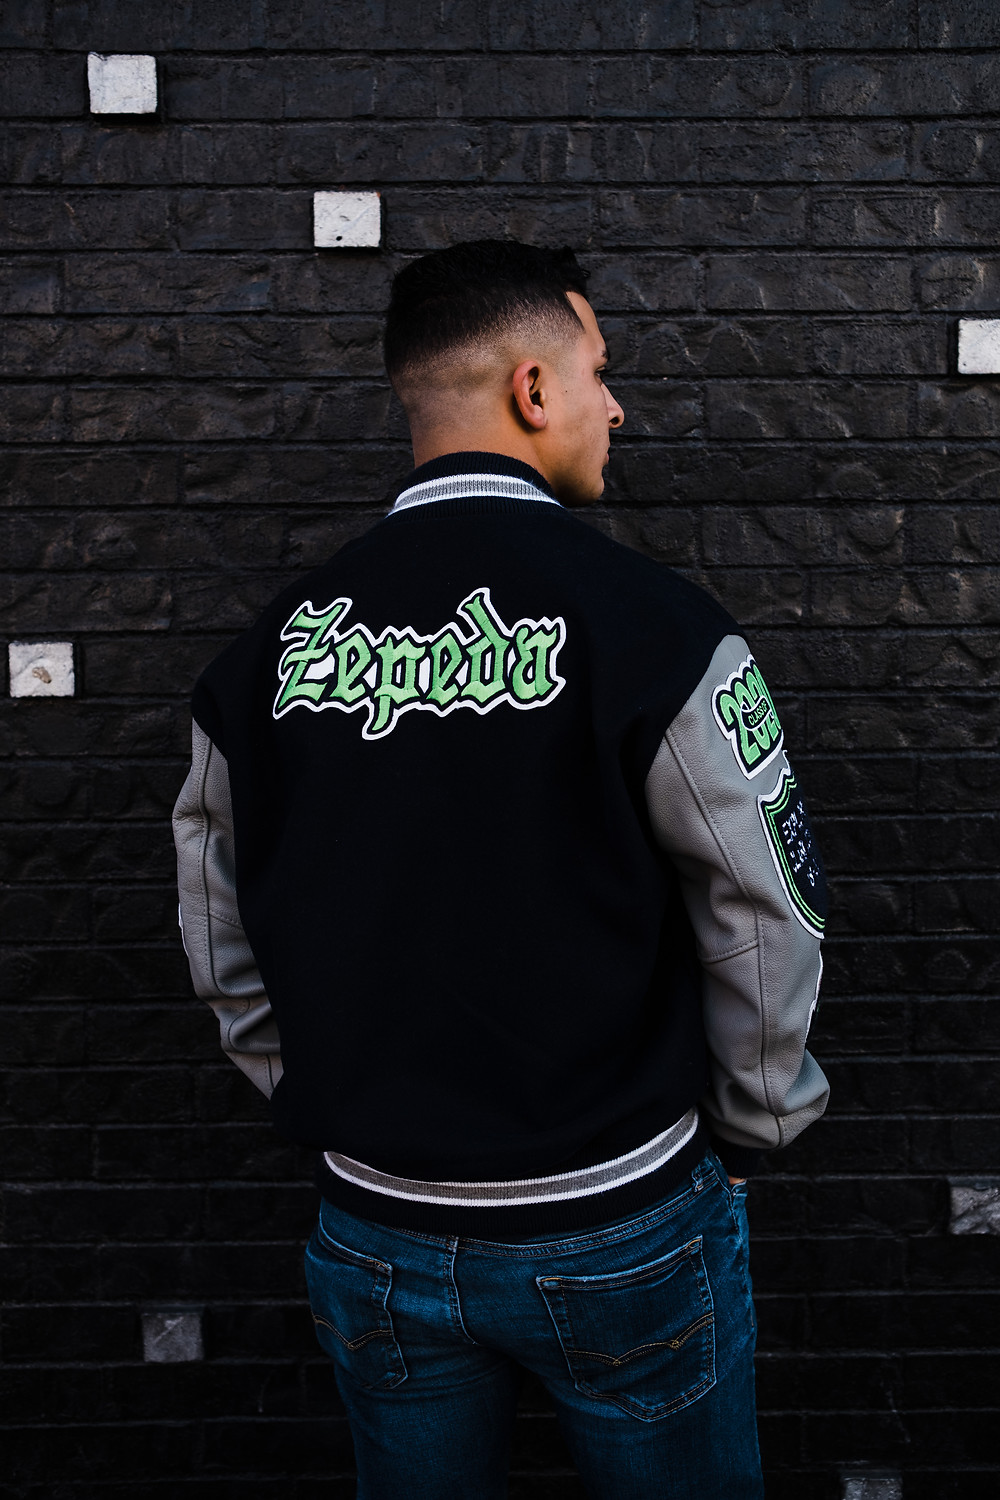 High school senior boy wears his letterman jacket in downtown las vegas for vibrant las vegas senior portraits in front of colorful mural walls